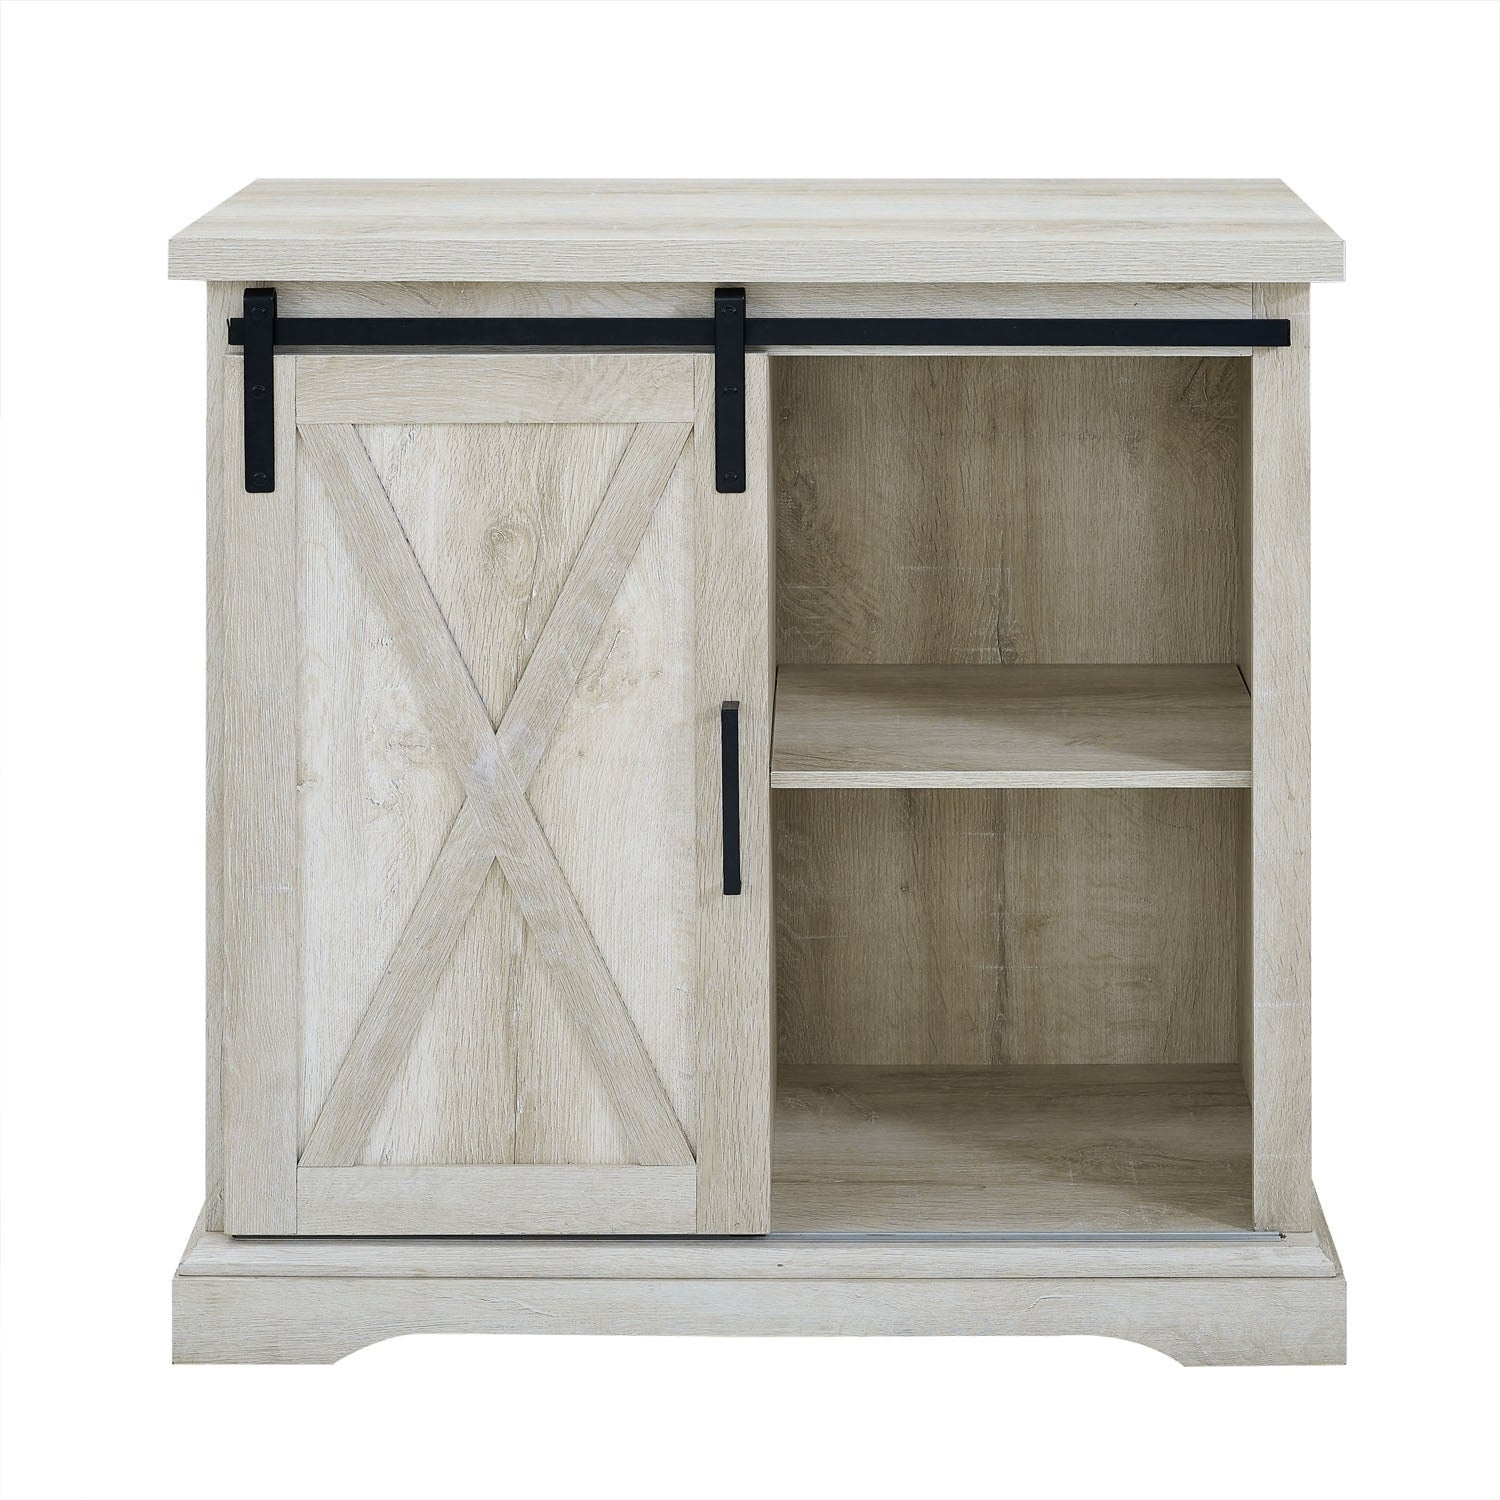 "32"" Rustic Farmhouse Wood Buffet With Storage Cabinet - White Oak - N/a in Saucedo Rustic White Buffets (Image 1 of 30)"